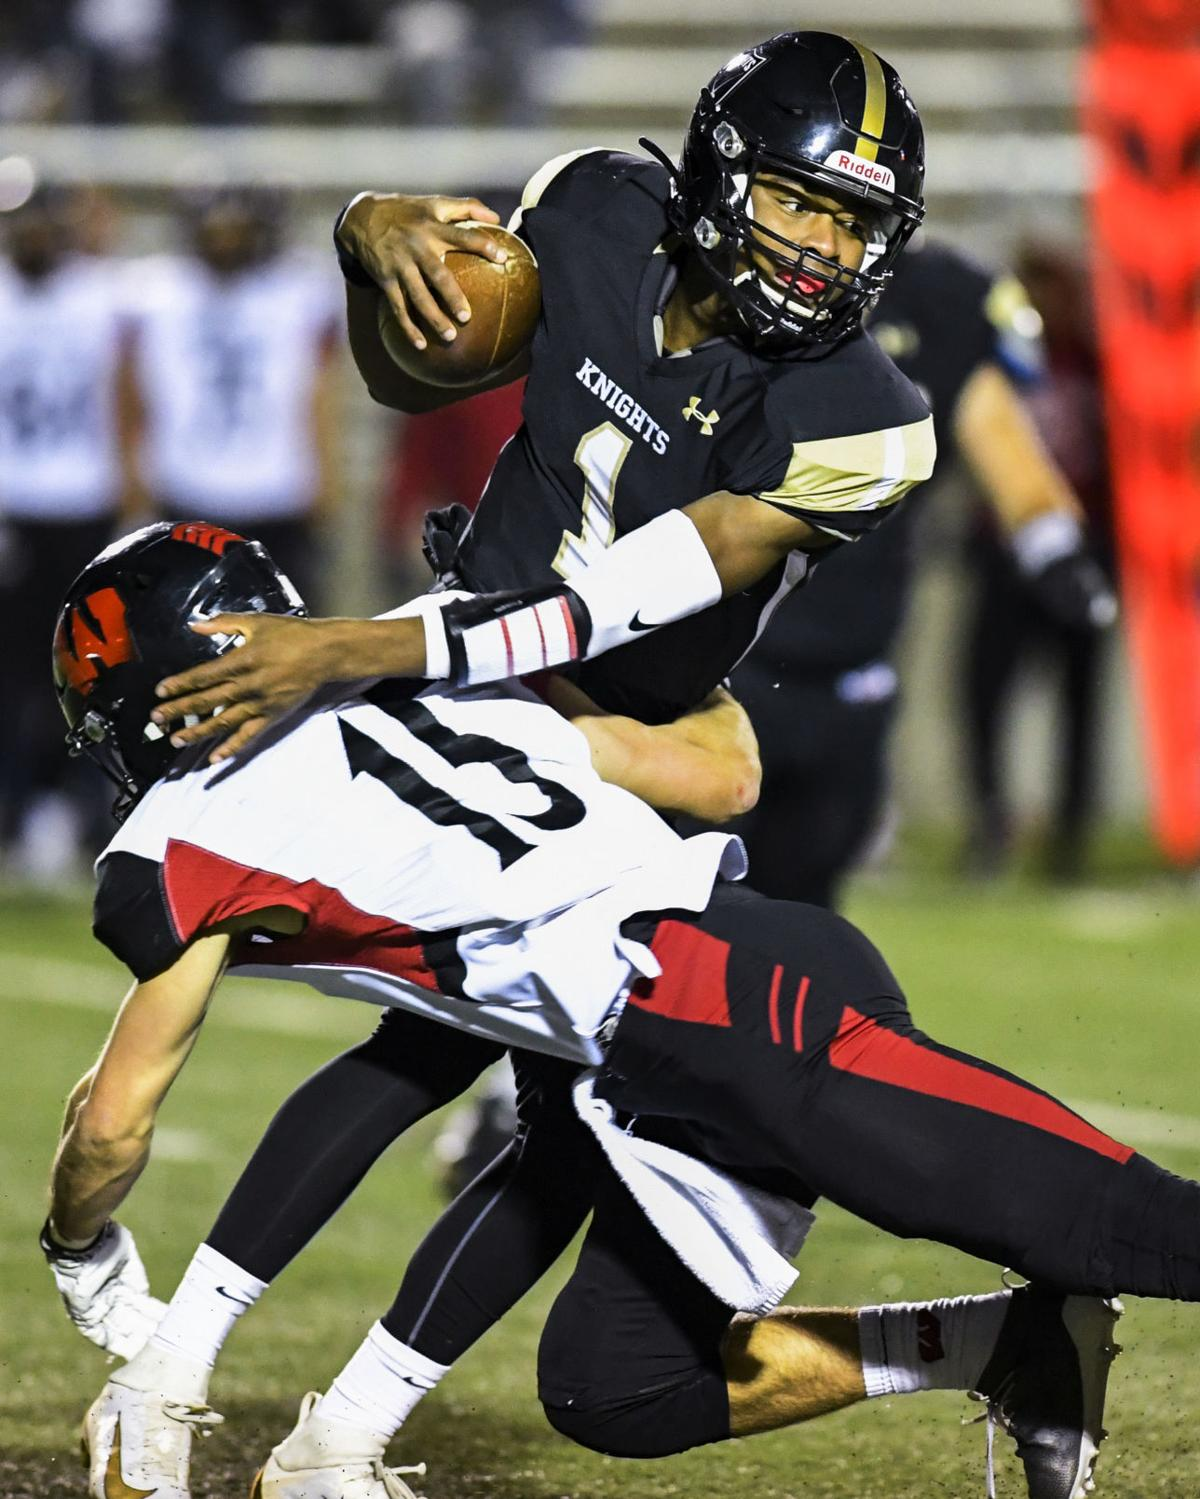 Omaha Westside vs. Lincoln Southeast, 11.8